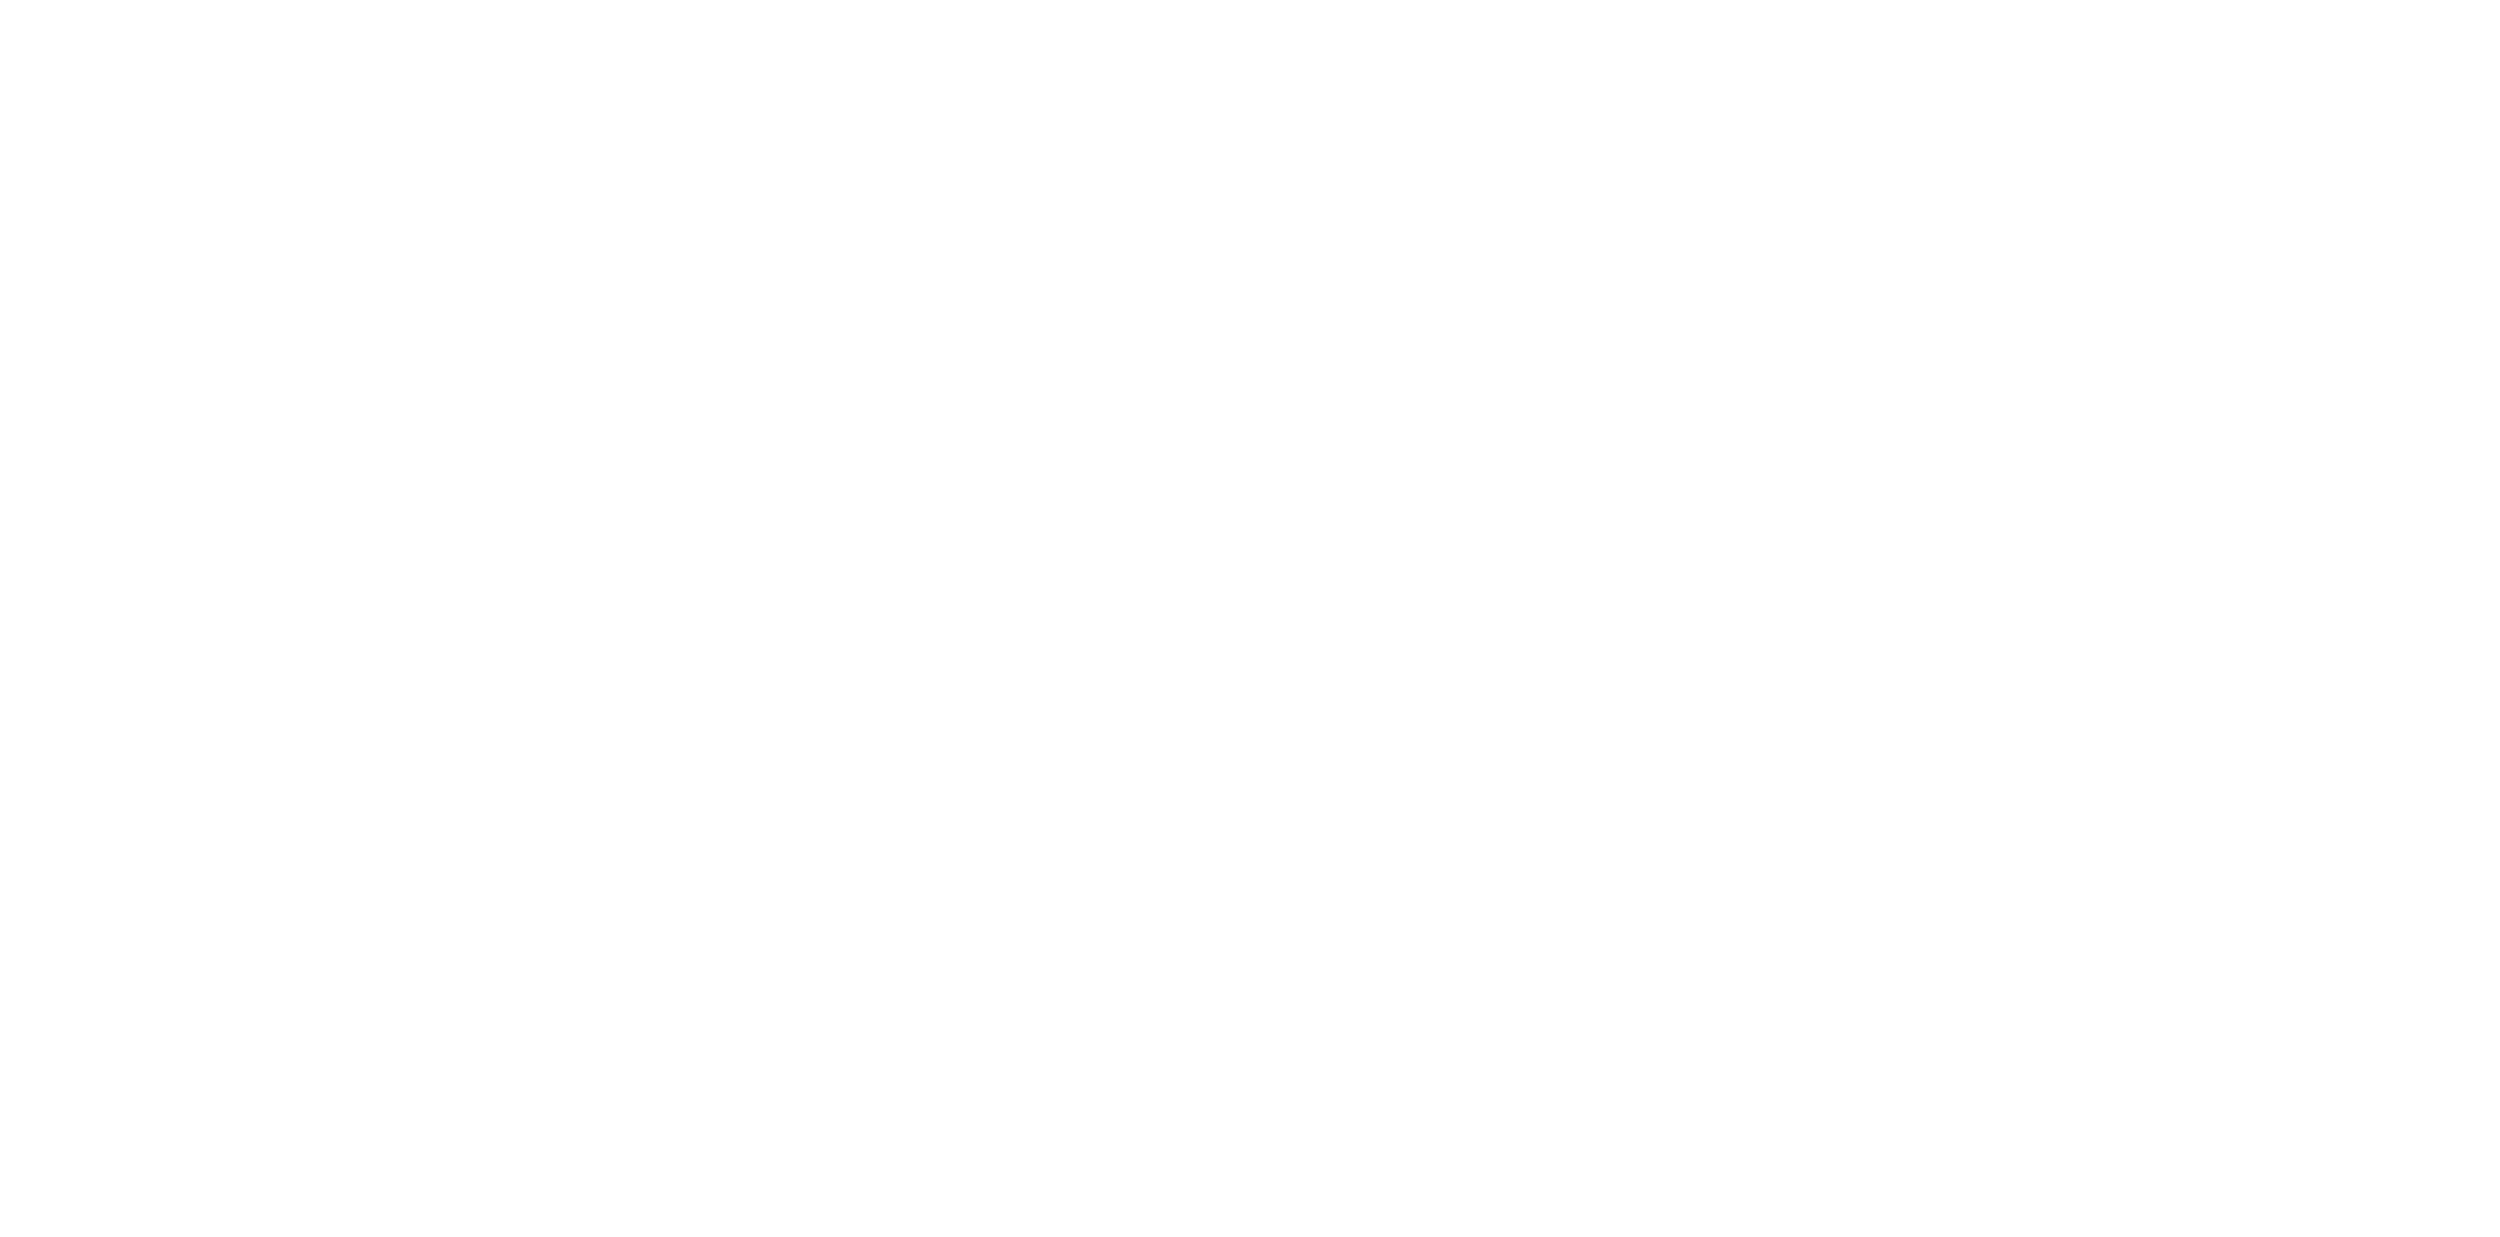 Lindsey Hook Calligraphy and Pen Arts - Full Branding Identity_white.png